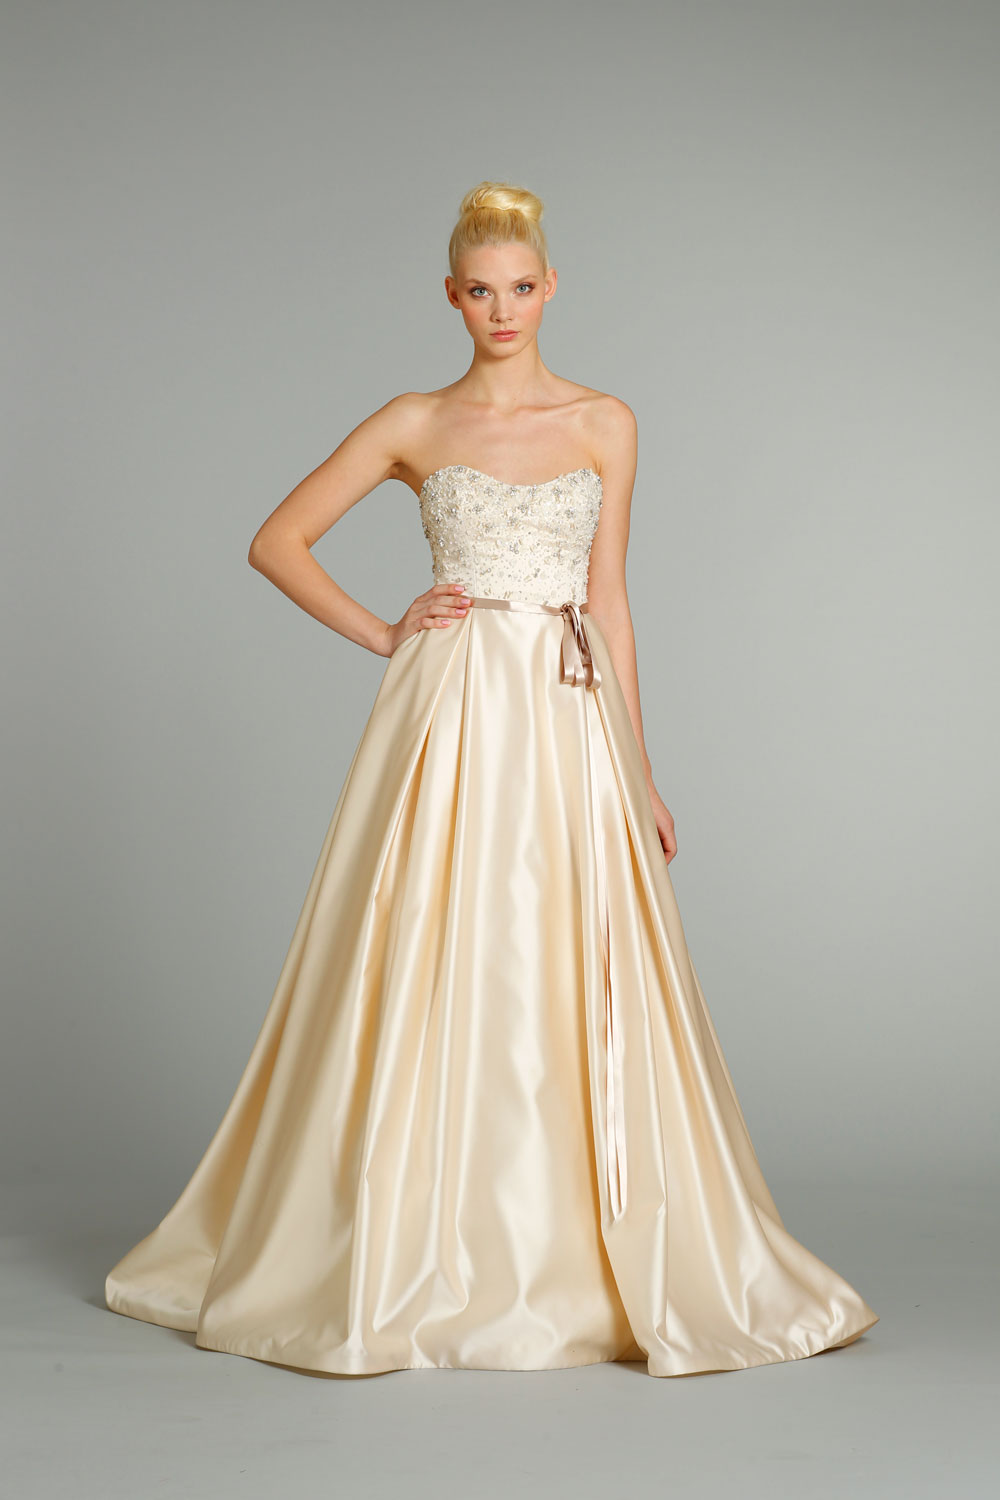 Fall-2012-wedding-dresses-jlm-couture-bridal-jim-hjelm-8257_front.original